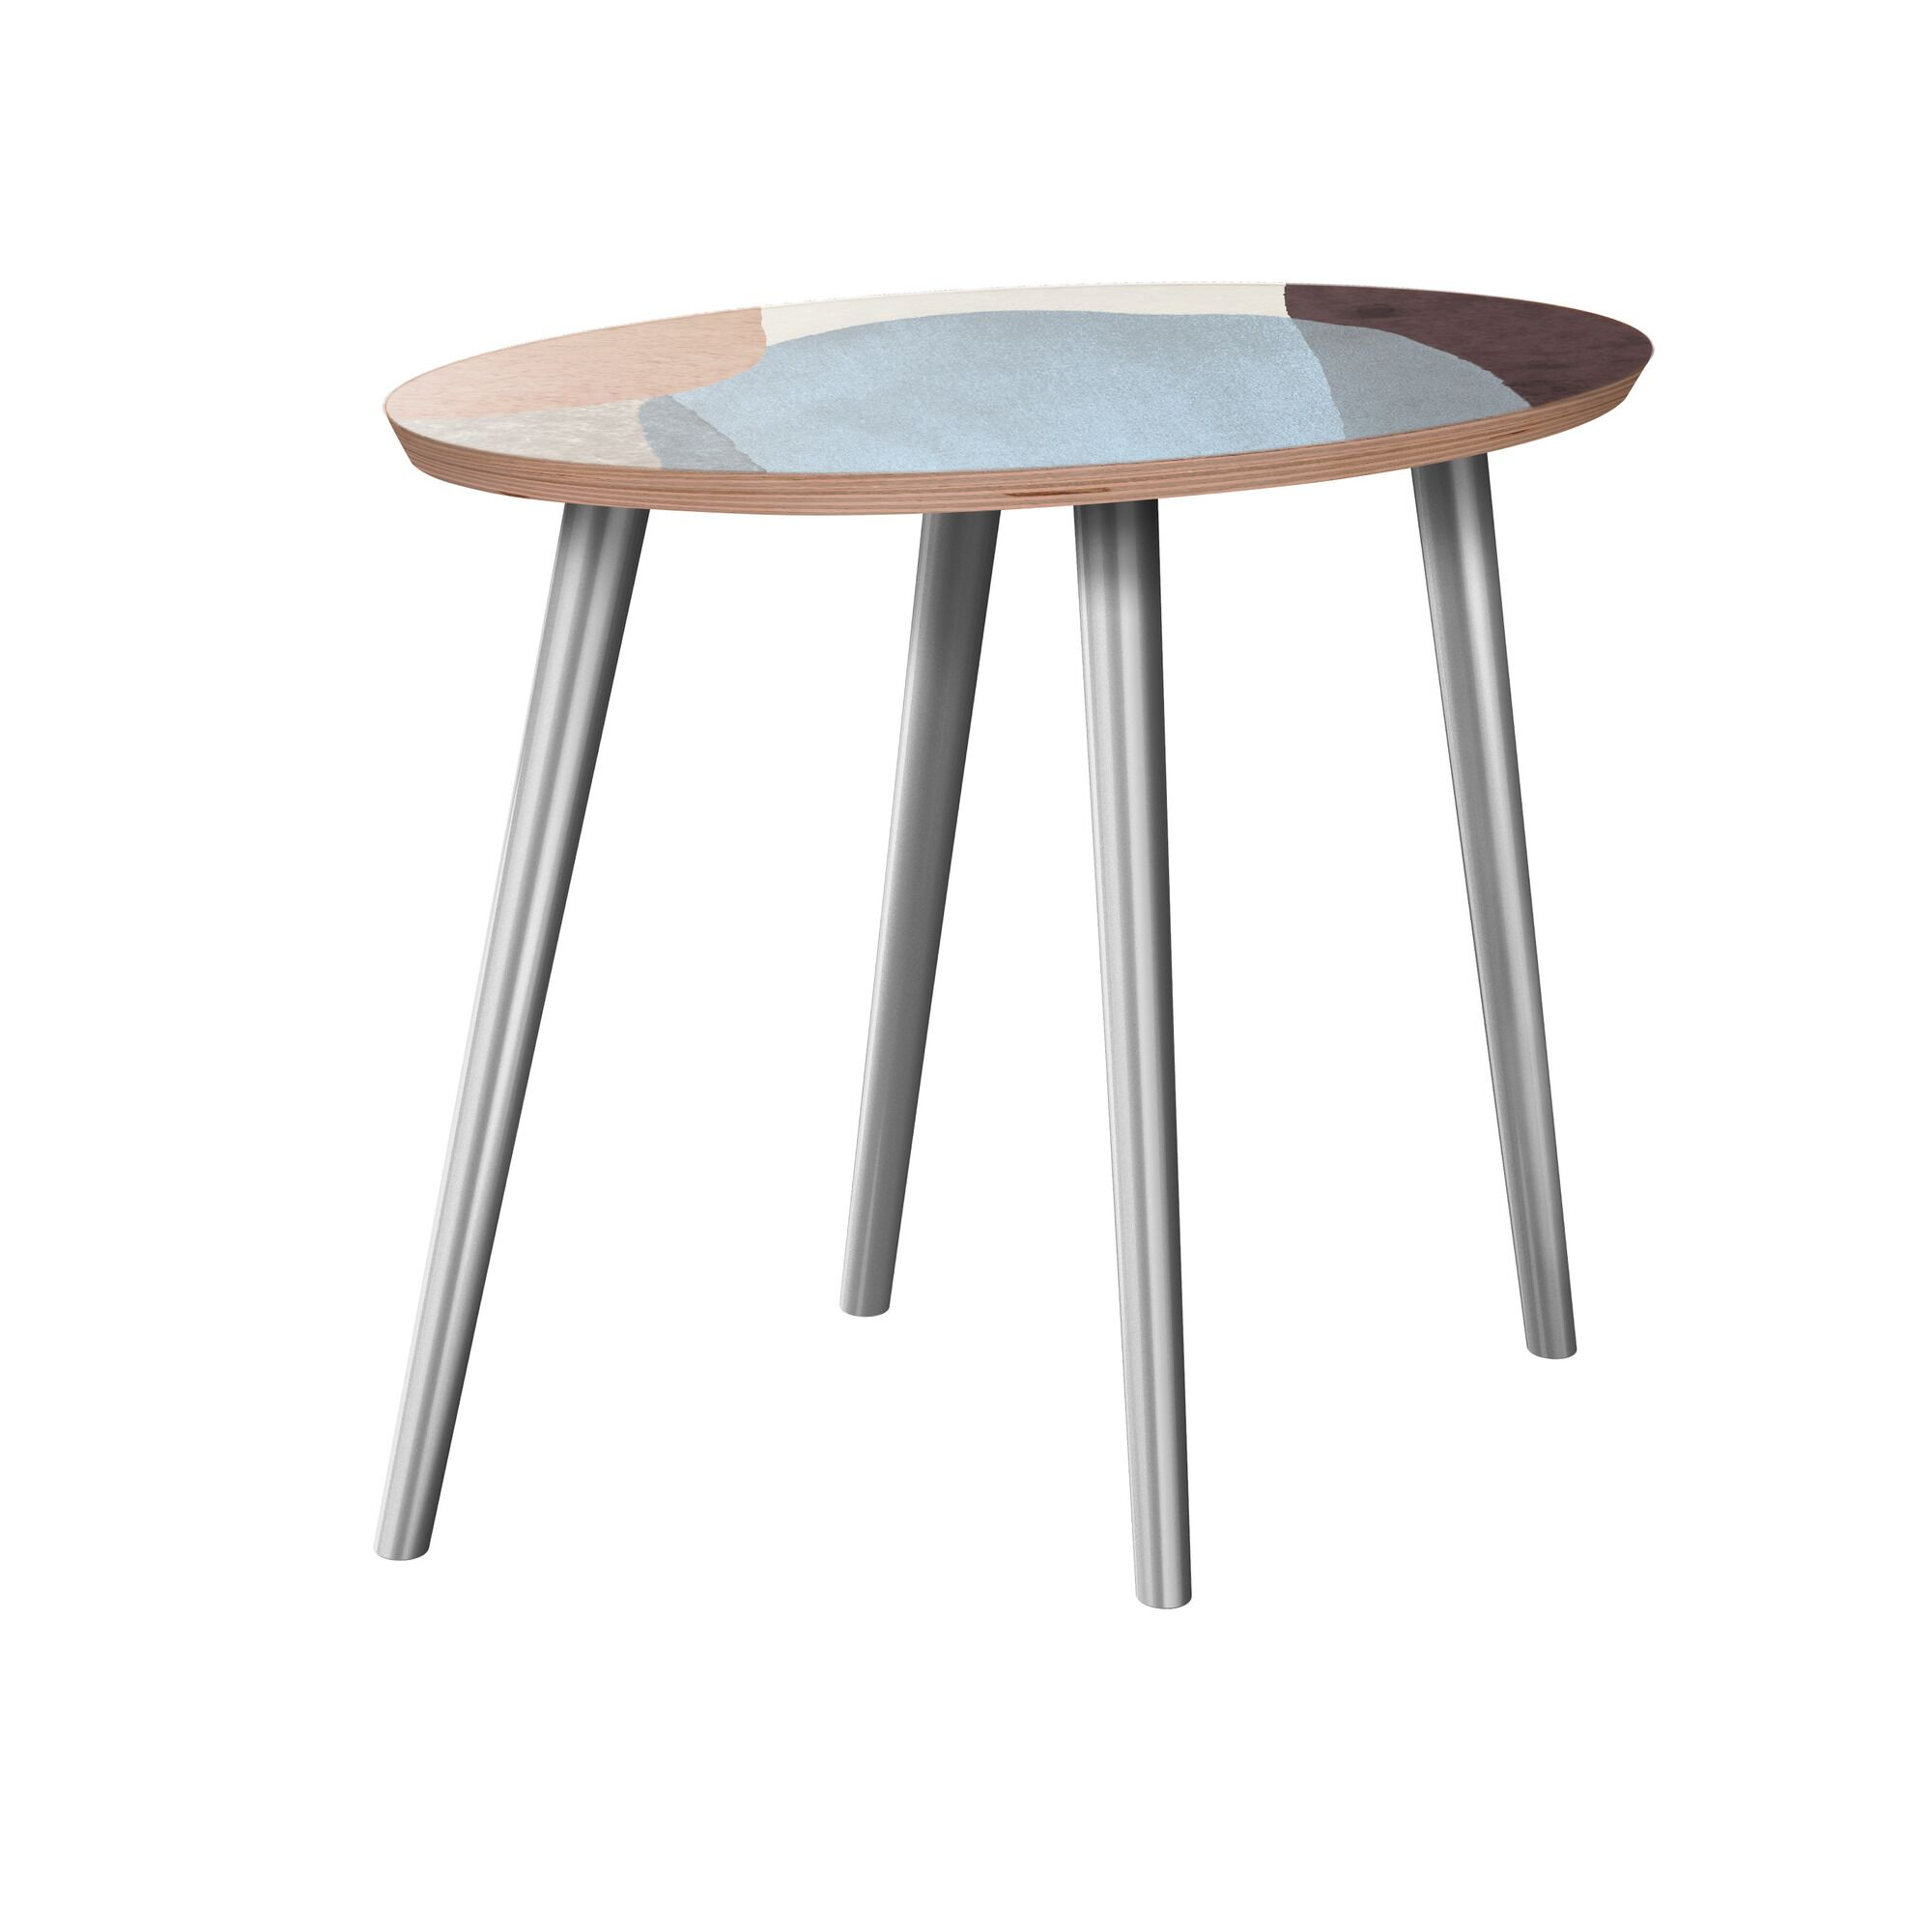 Eure End Table Table Base Color: Chrome, Table Top Color: Walnut